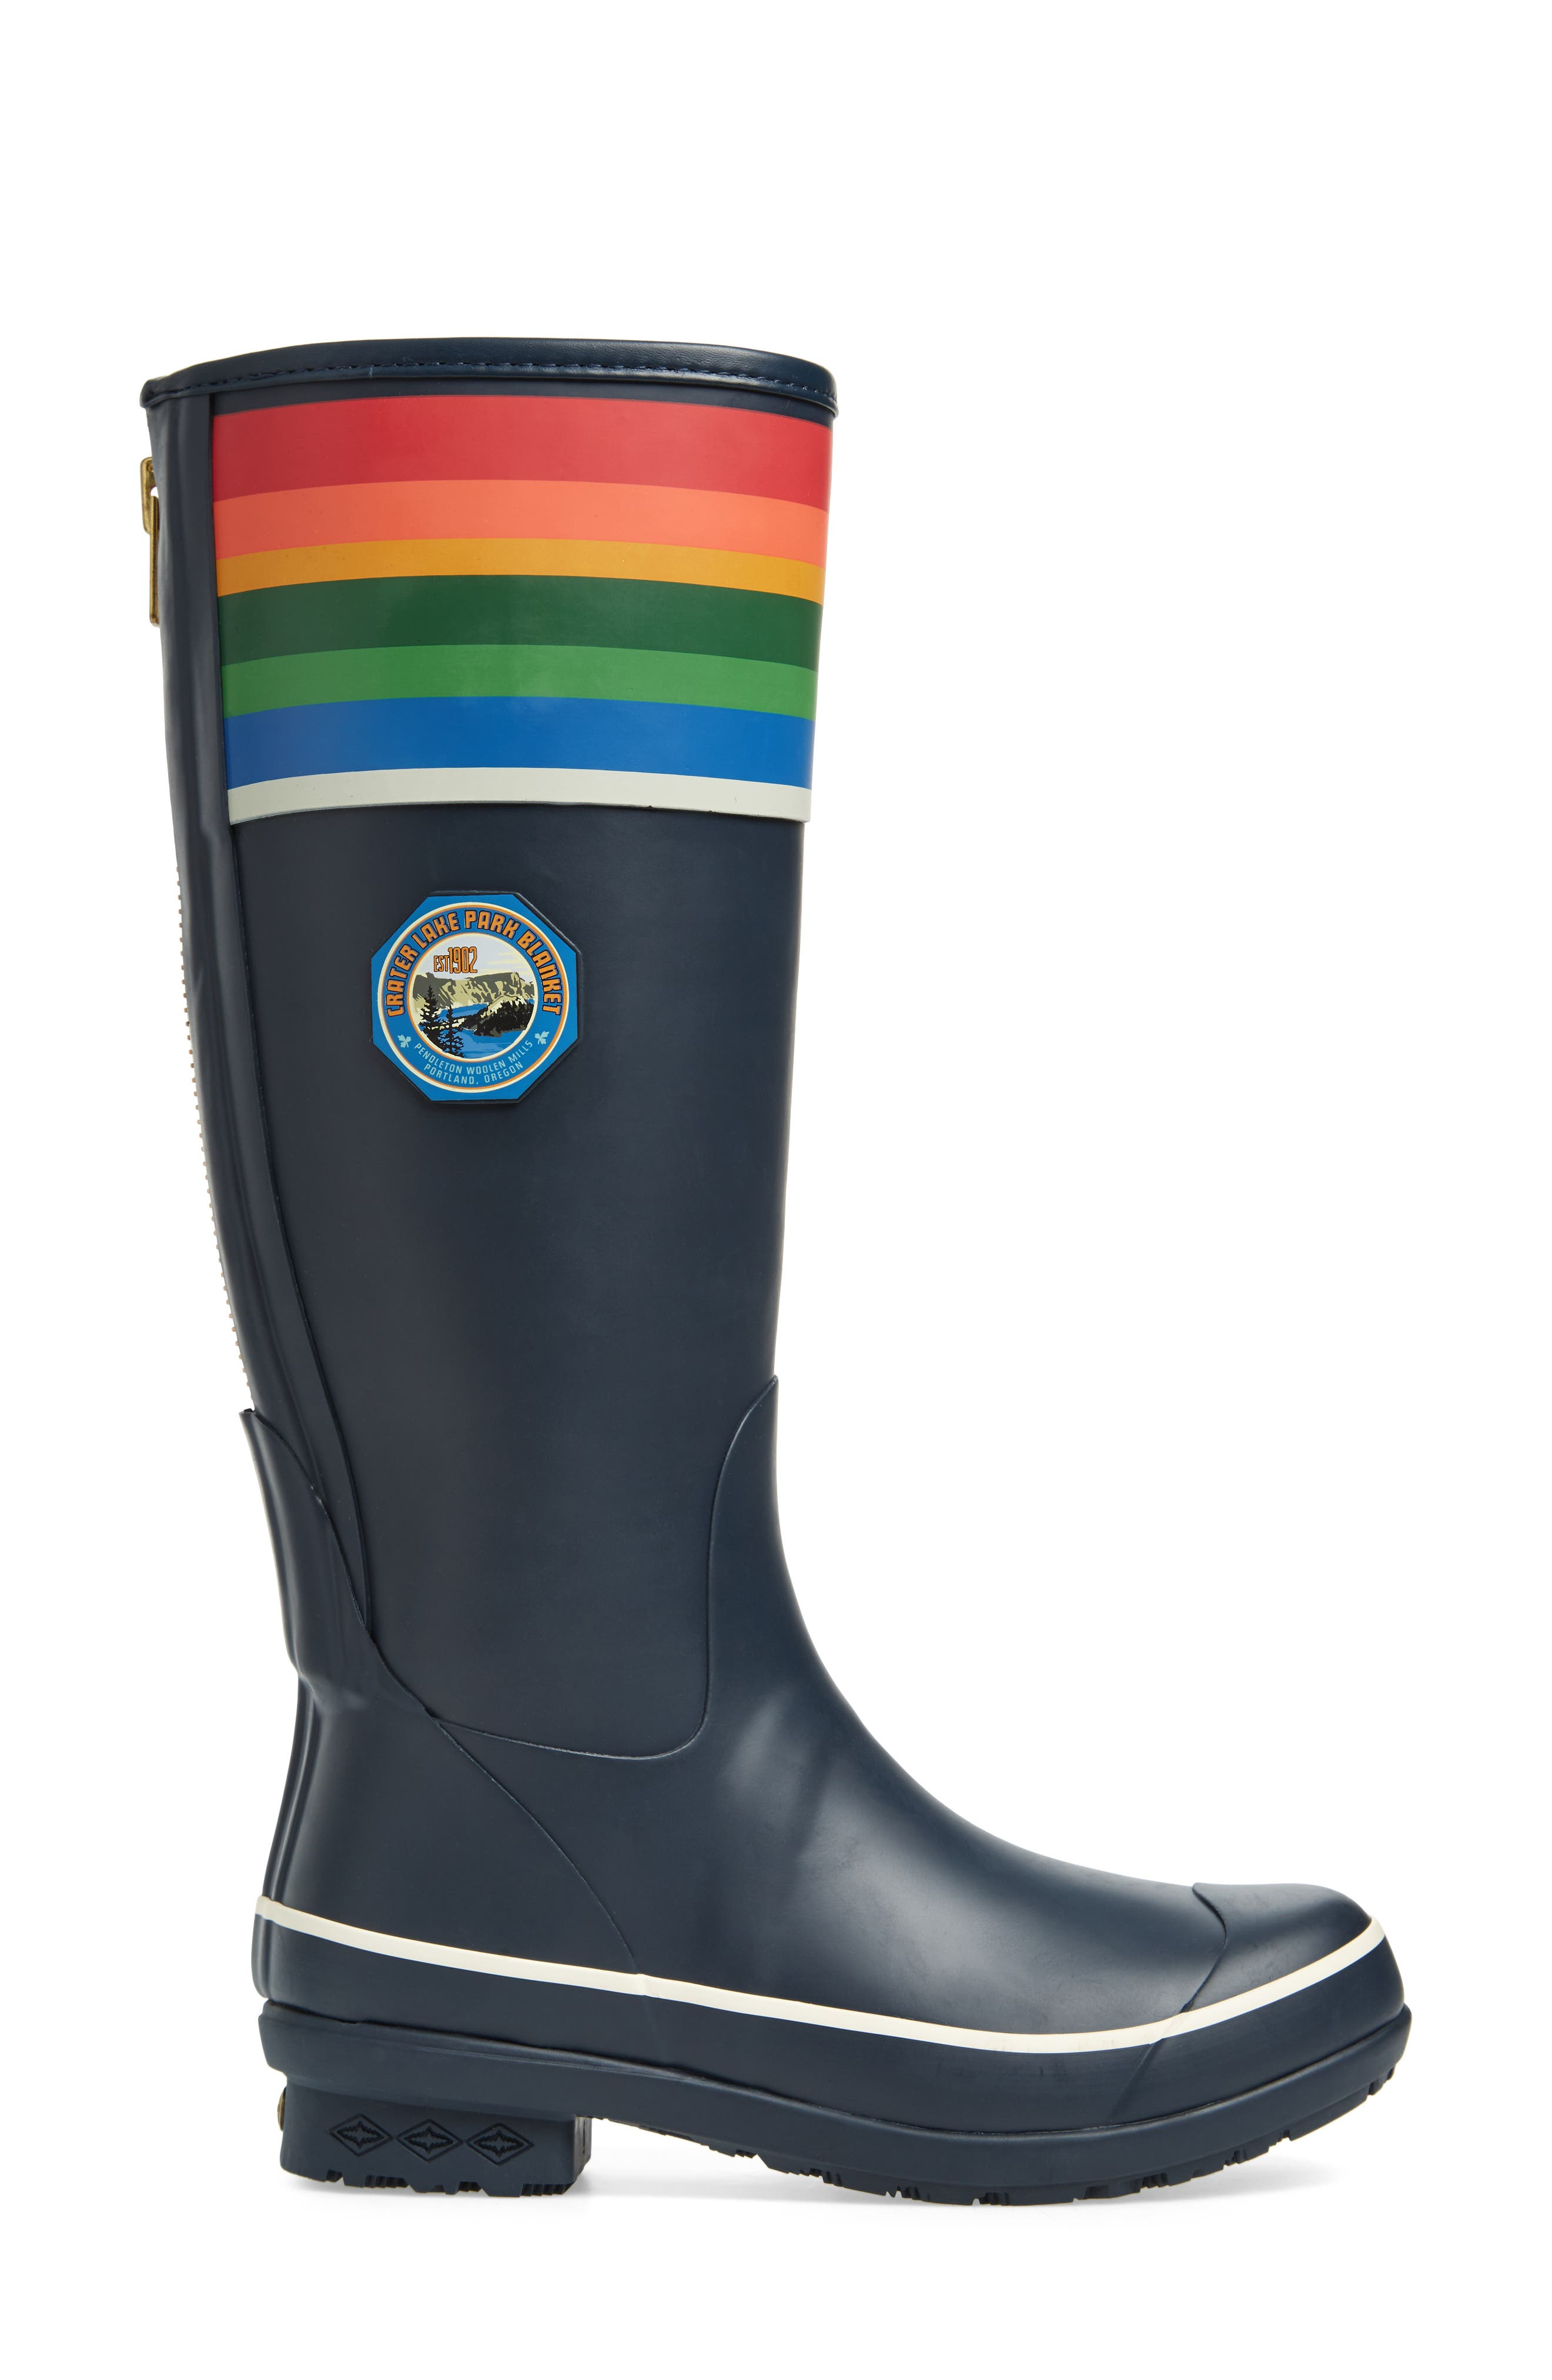 PENDLETON,                             Crater Lake National Park Tall Rain Boot,                             Alternate thumbnail 3, color,                             BLUE